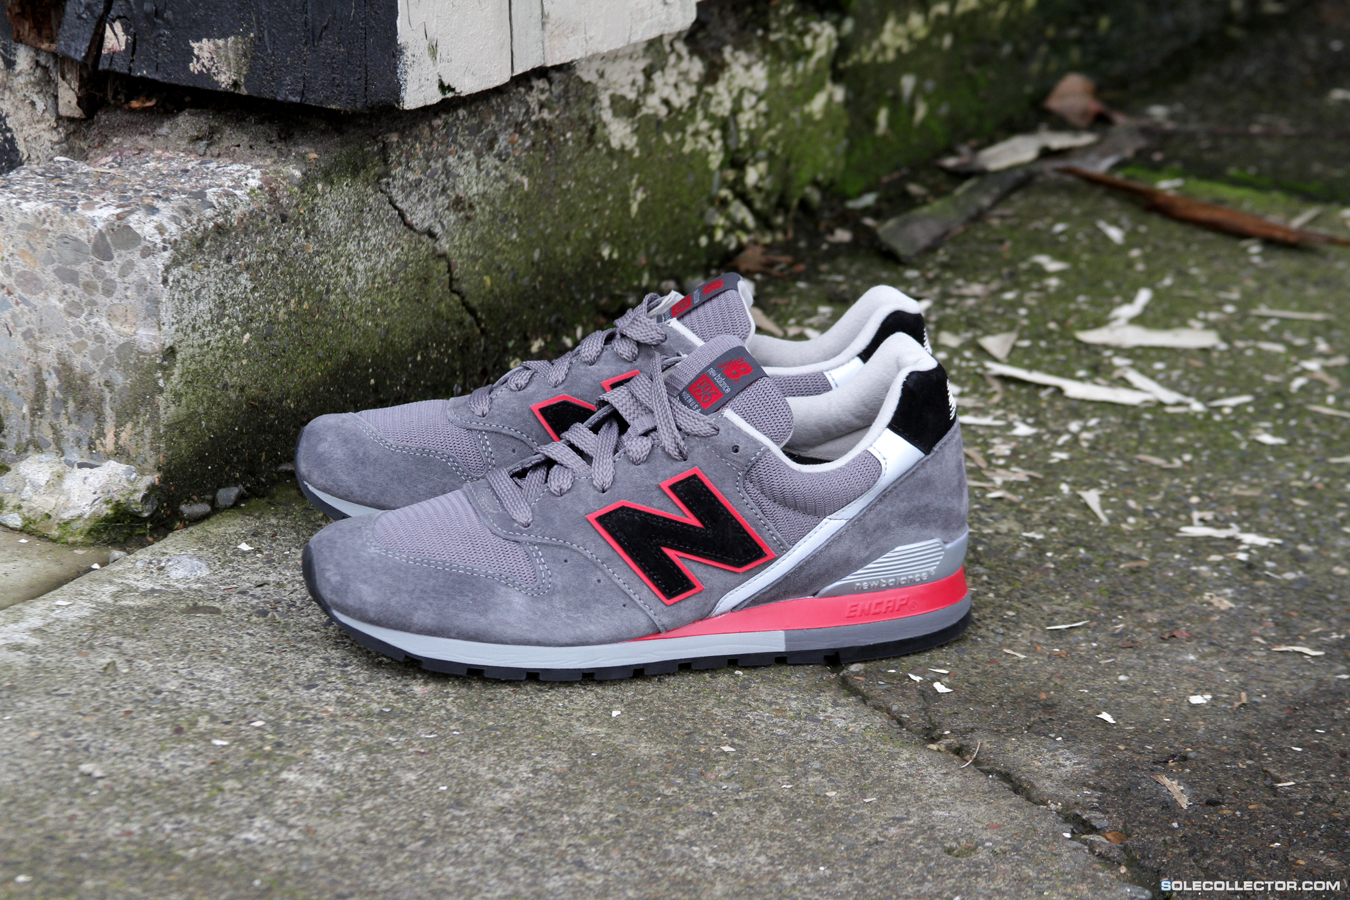 new york 09b0e 8d02c New Balance 996 'Dark Grey/Red' - American Renegade Pack ...